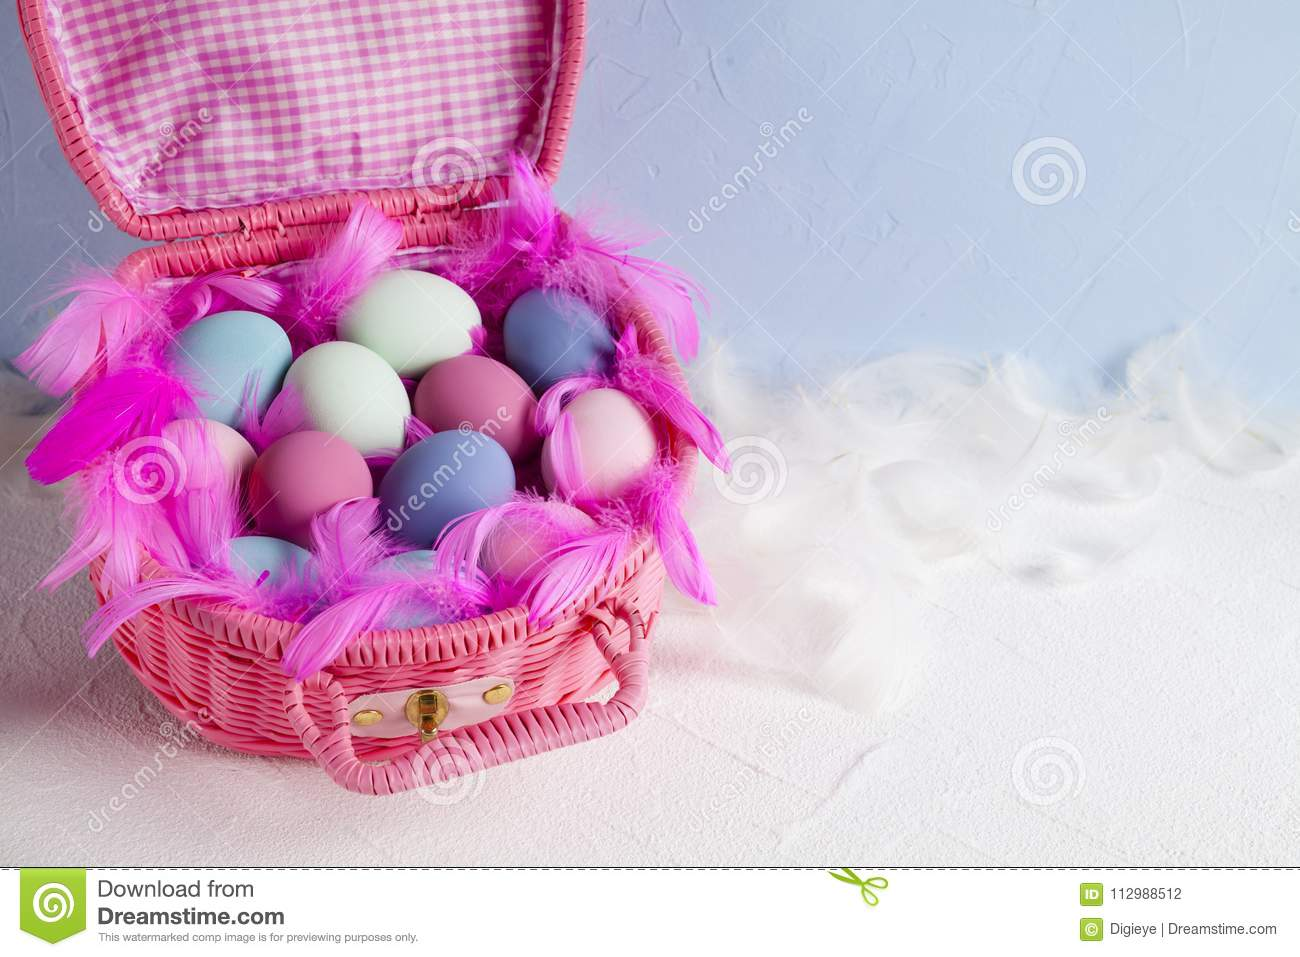 Happy Easter - pink basket full of colored eggs and feathers